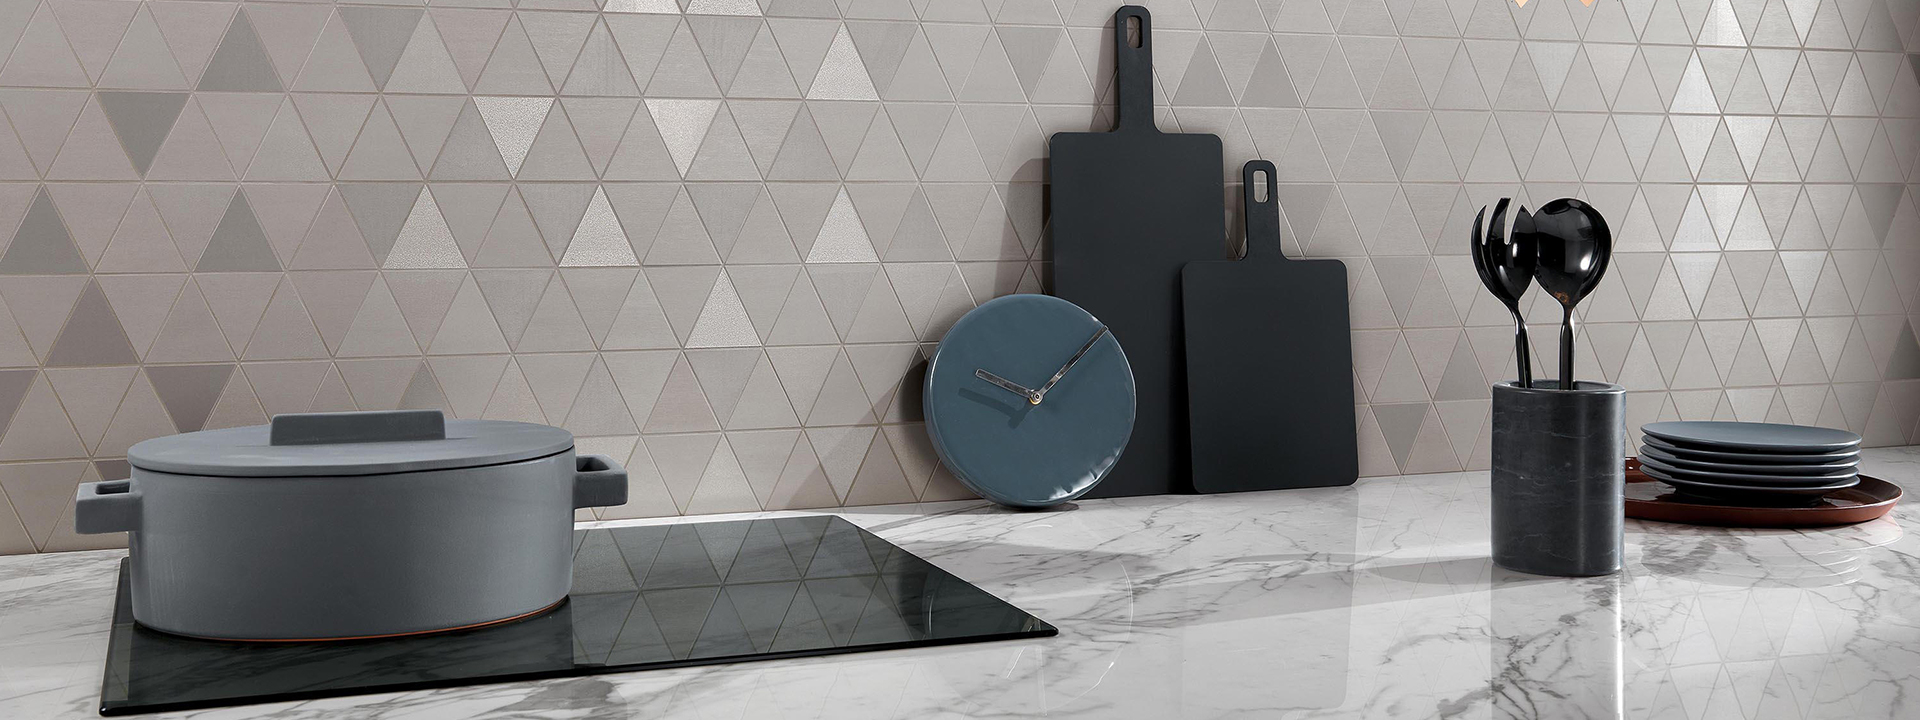 Tiles Interior Design Bathware Tile Range Volare Concepts